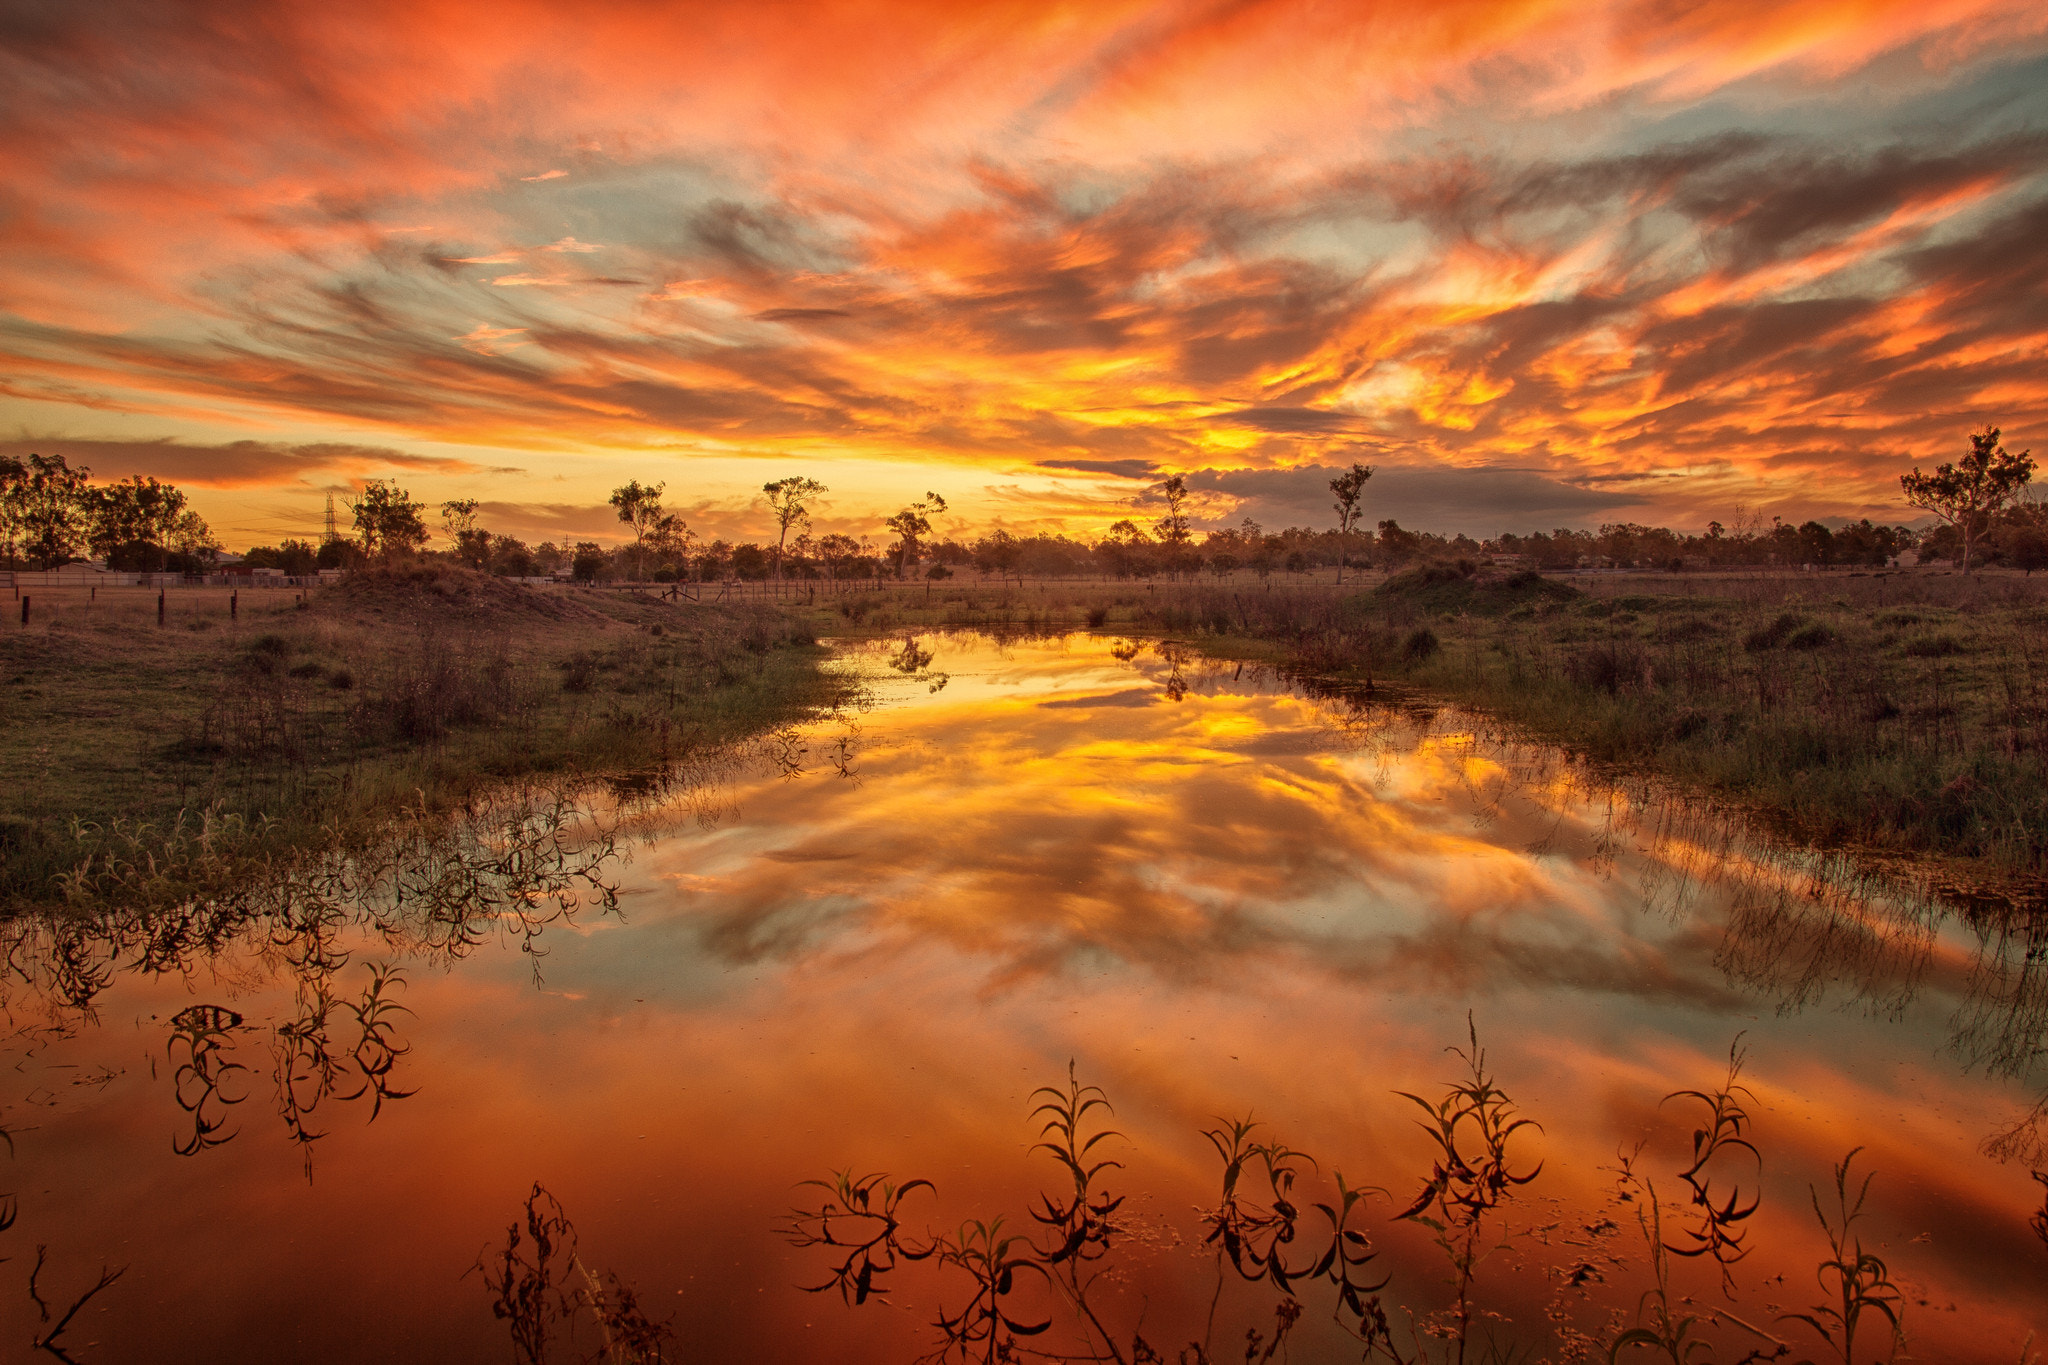 Photograph Take A Seat by Steve mcdermott on 500px